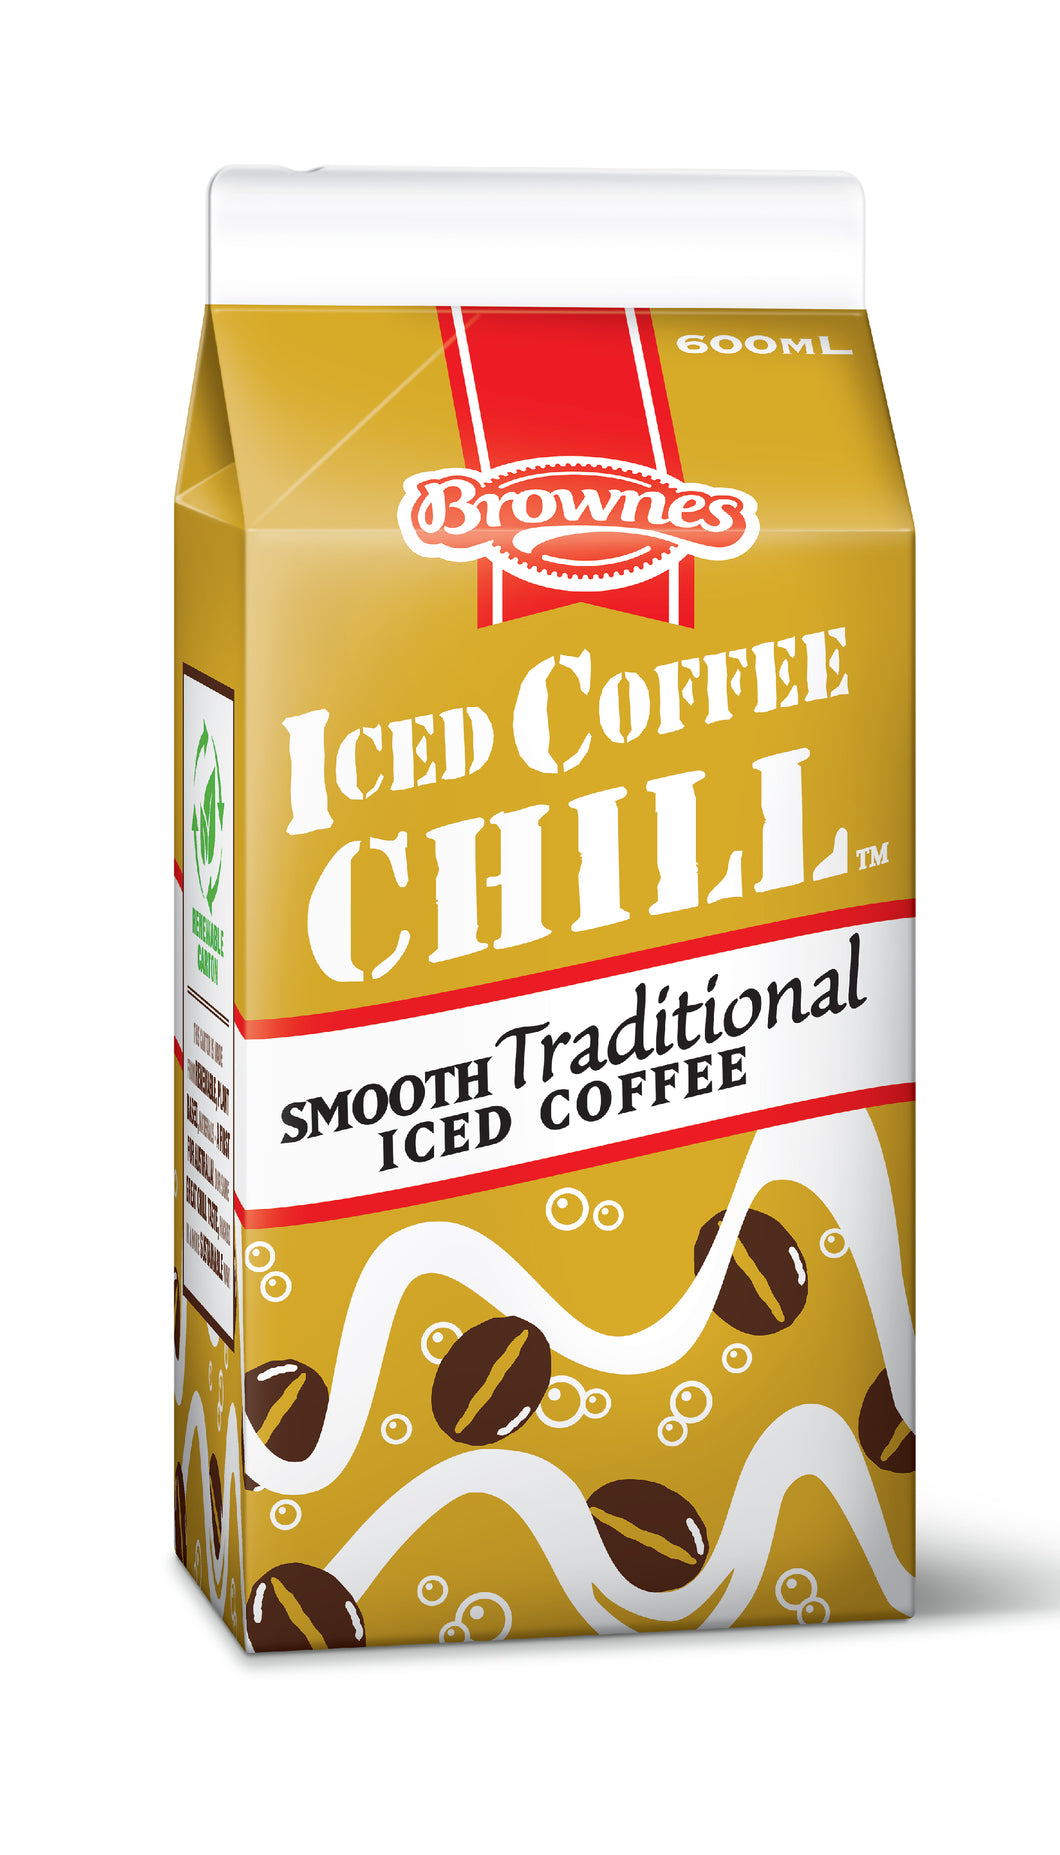 Brownes Iced Coffee CHILL 600mL